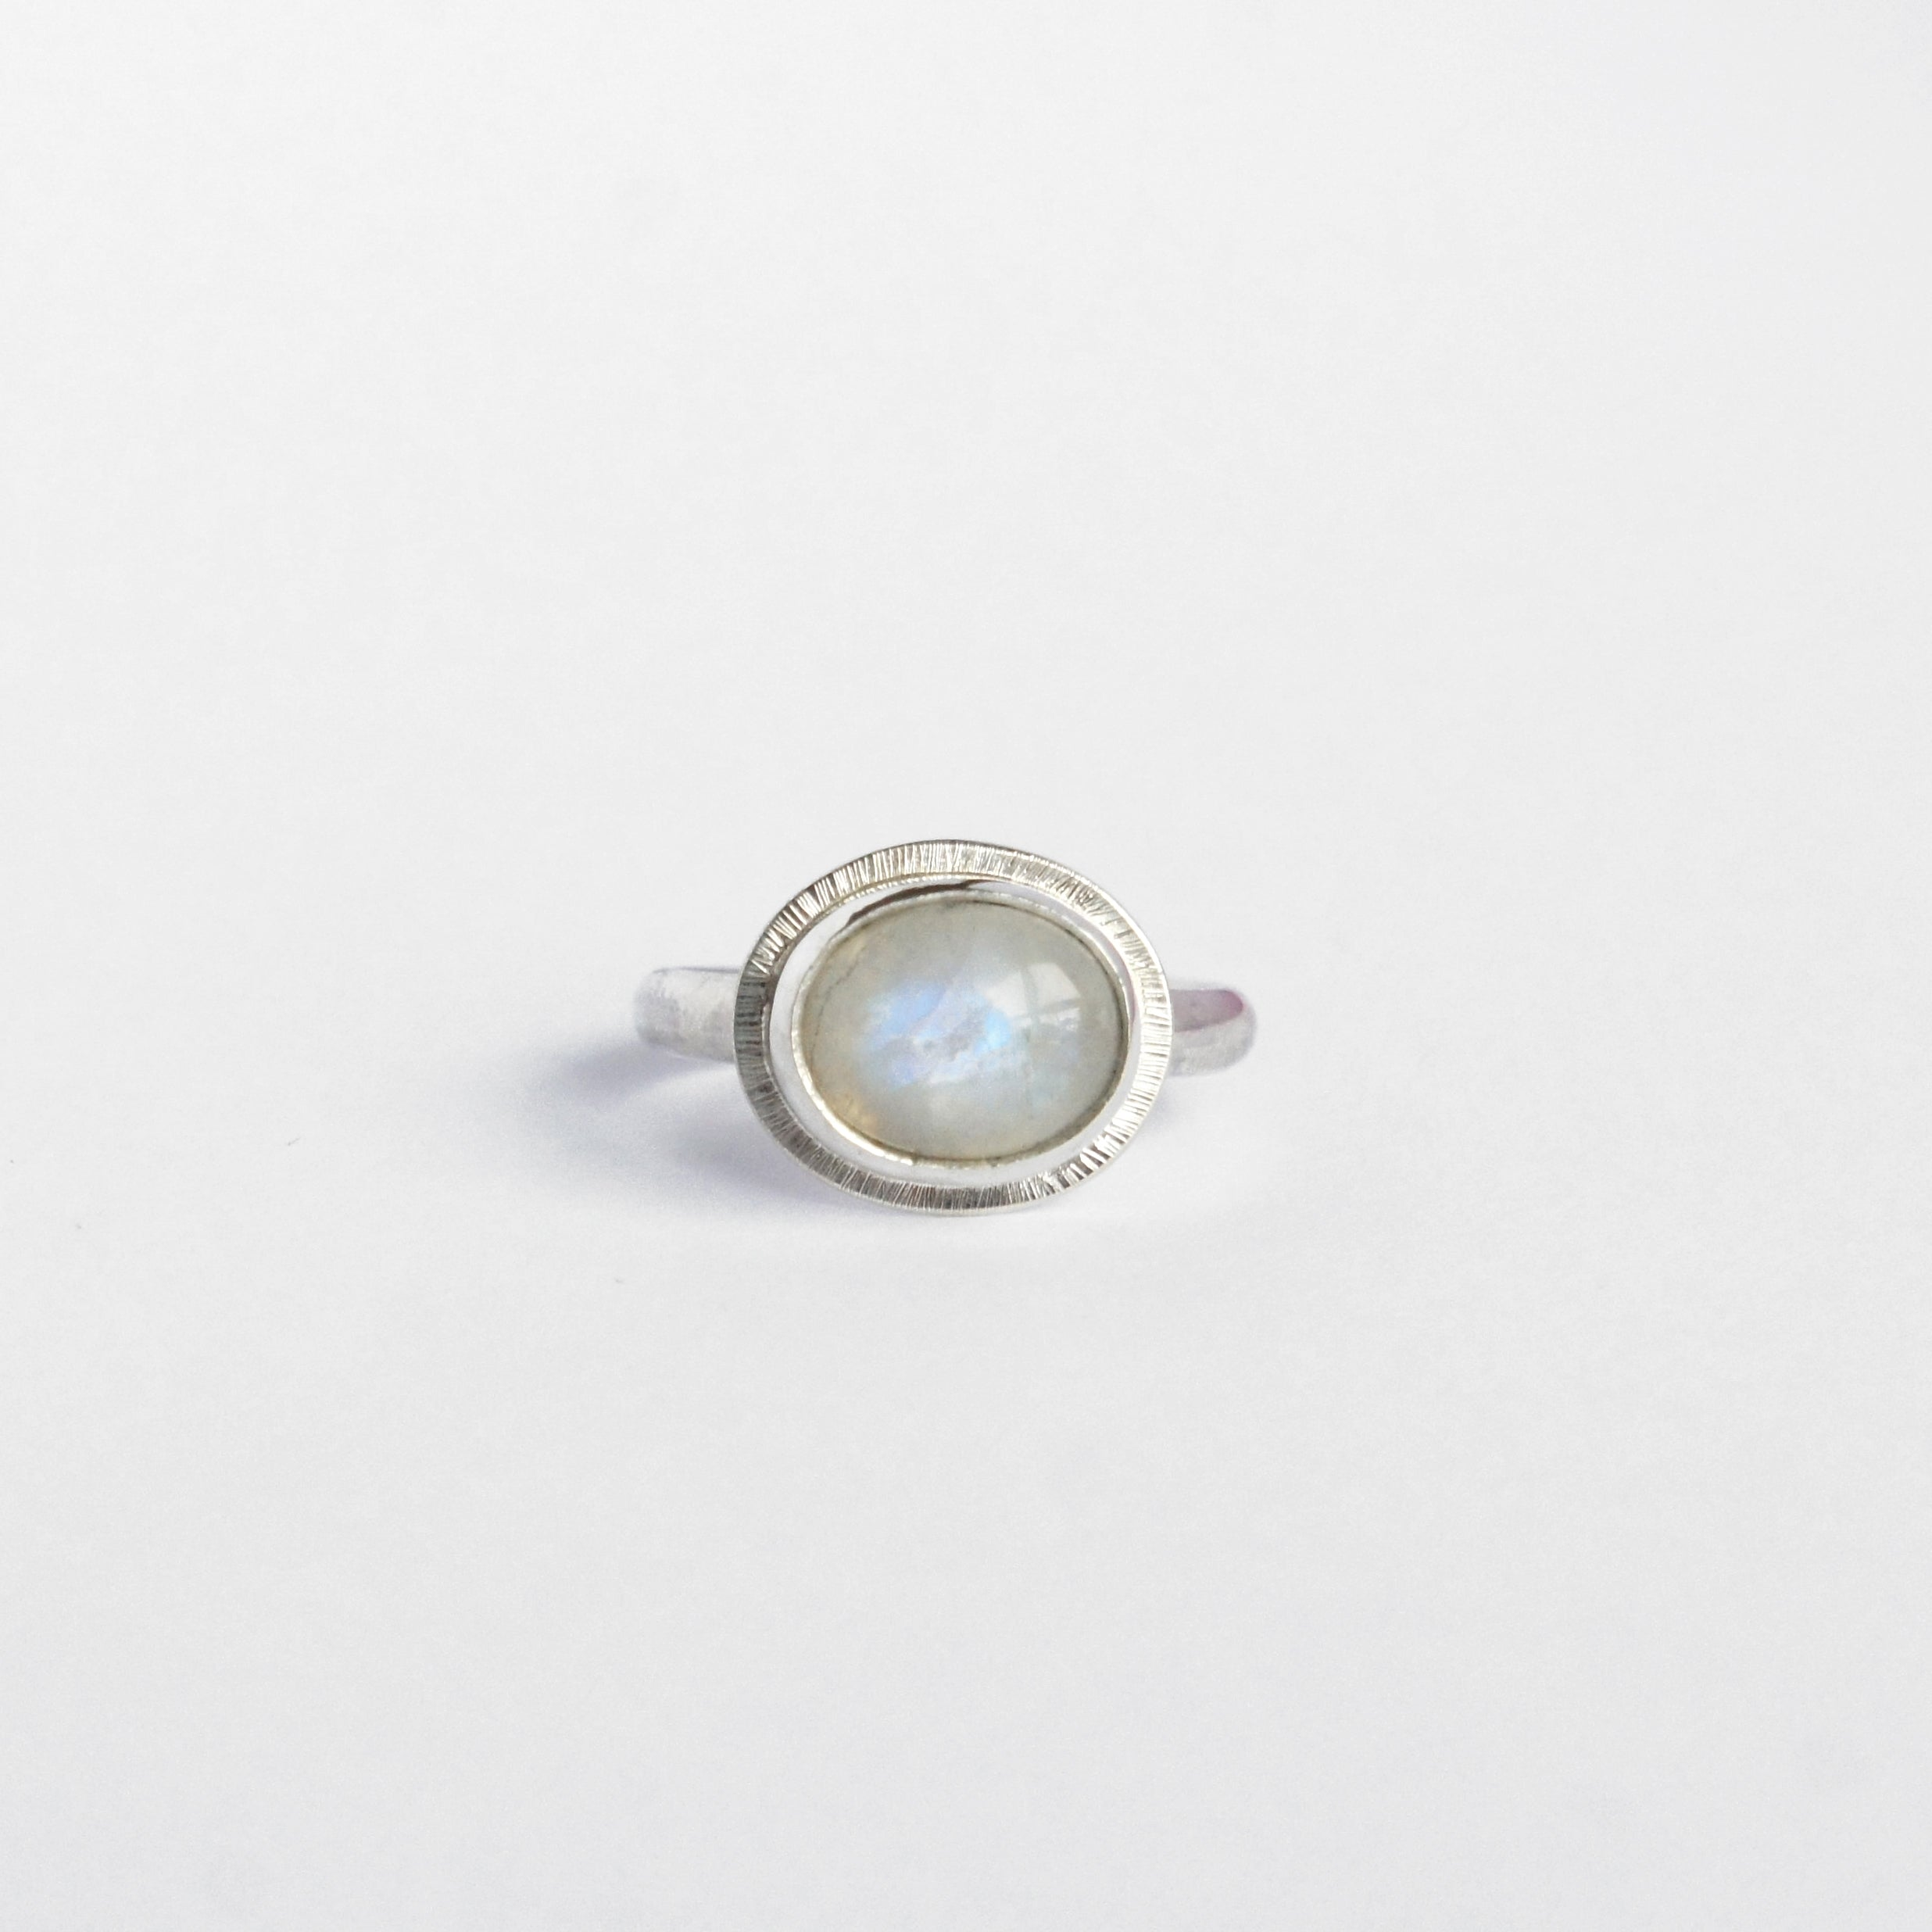 Emily Eliza Arlotte Handcrafted Fine Jewellery - Sterling Silver Moonstone Halo Ring Boho Bohemian Witchy Gemstone Style Fashion